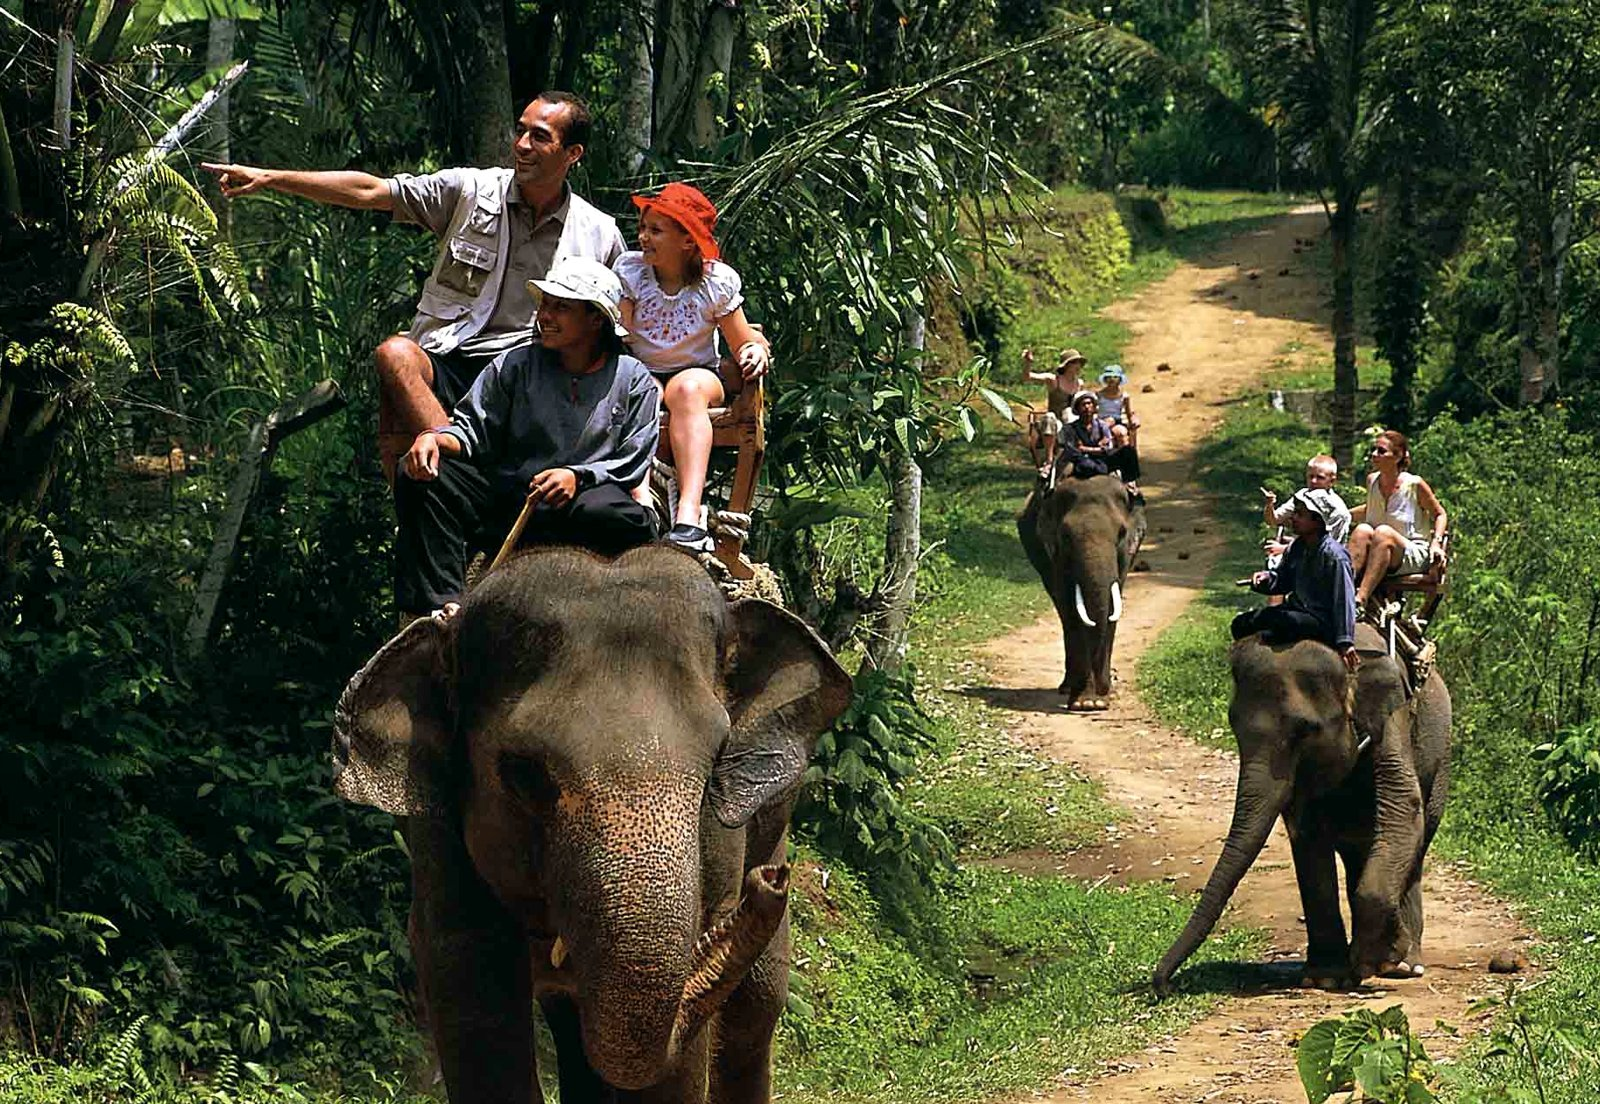 How to take an elephant ride in Bali